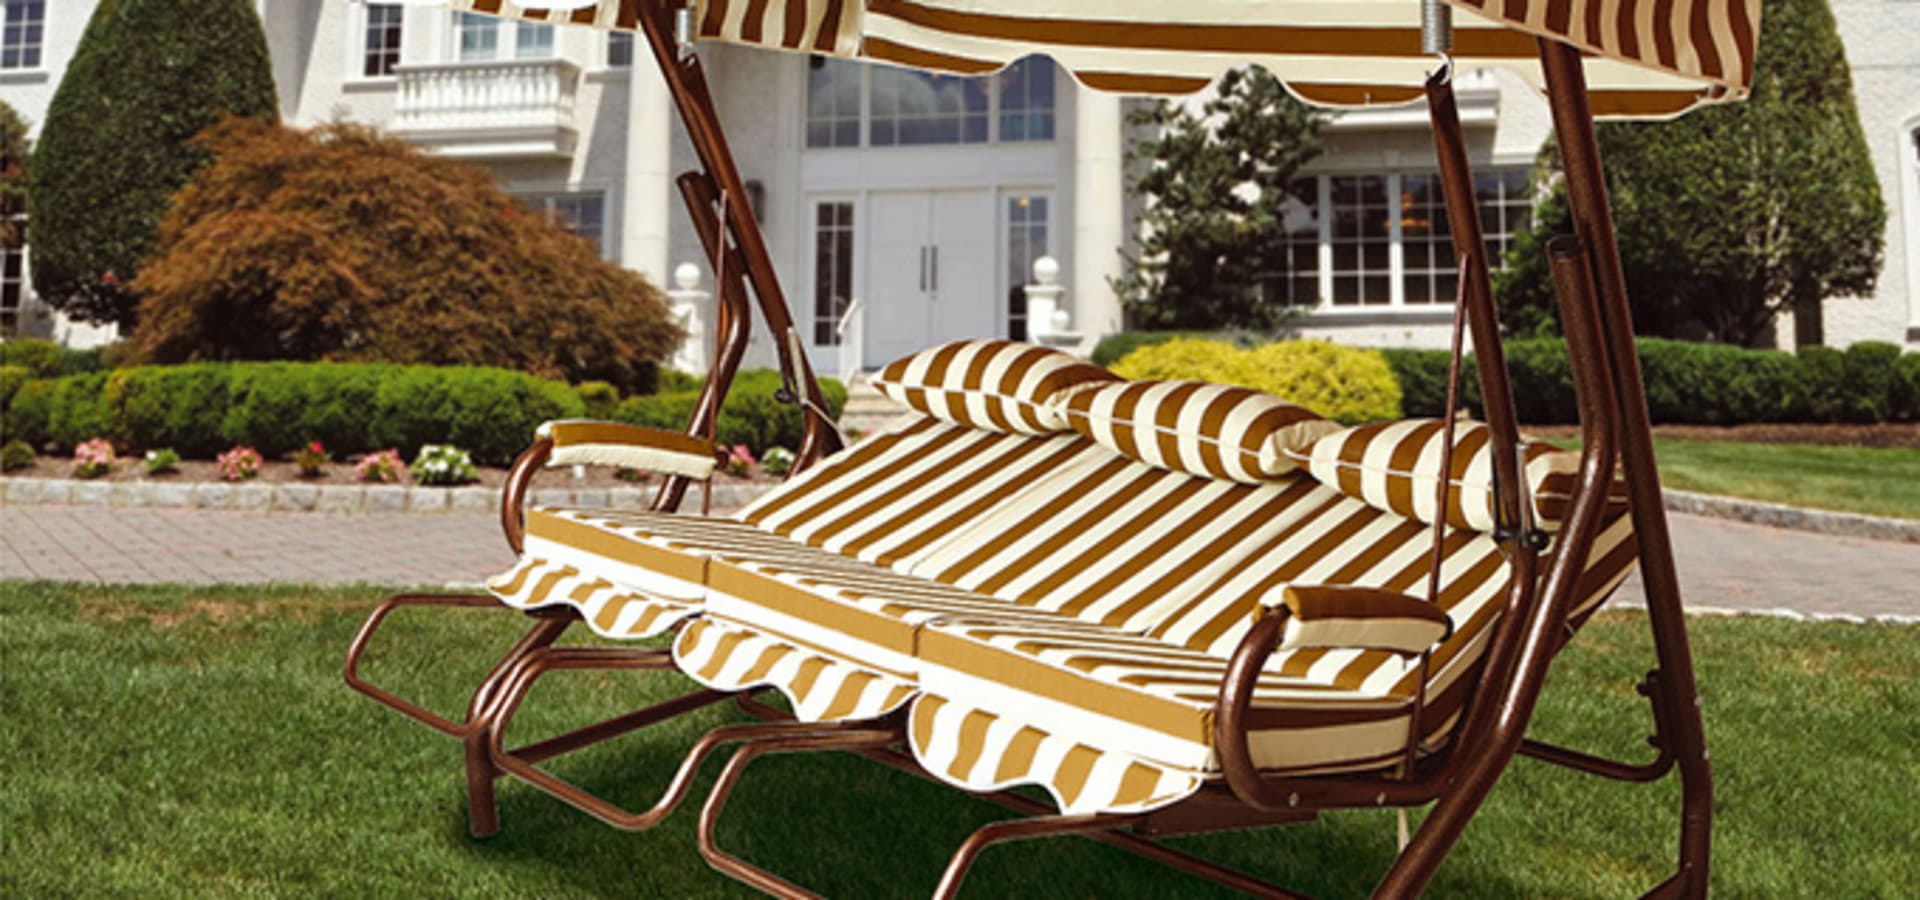 ERİNÖZ OUTDOOR FURNITURE